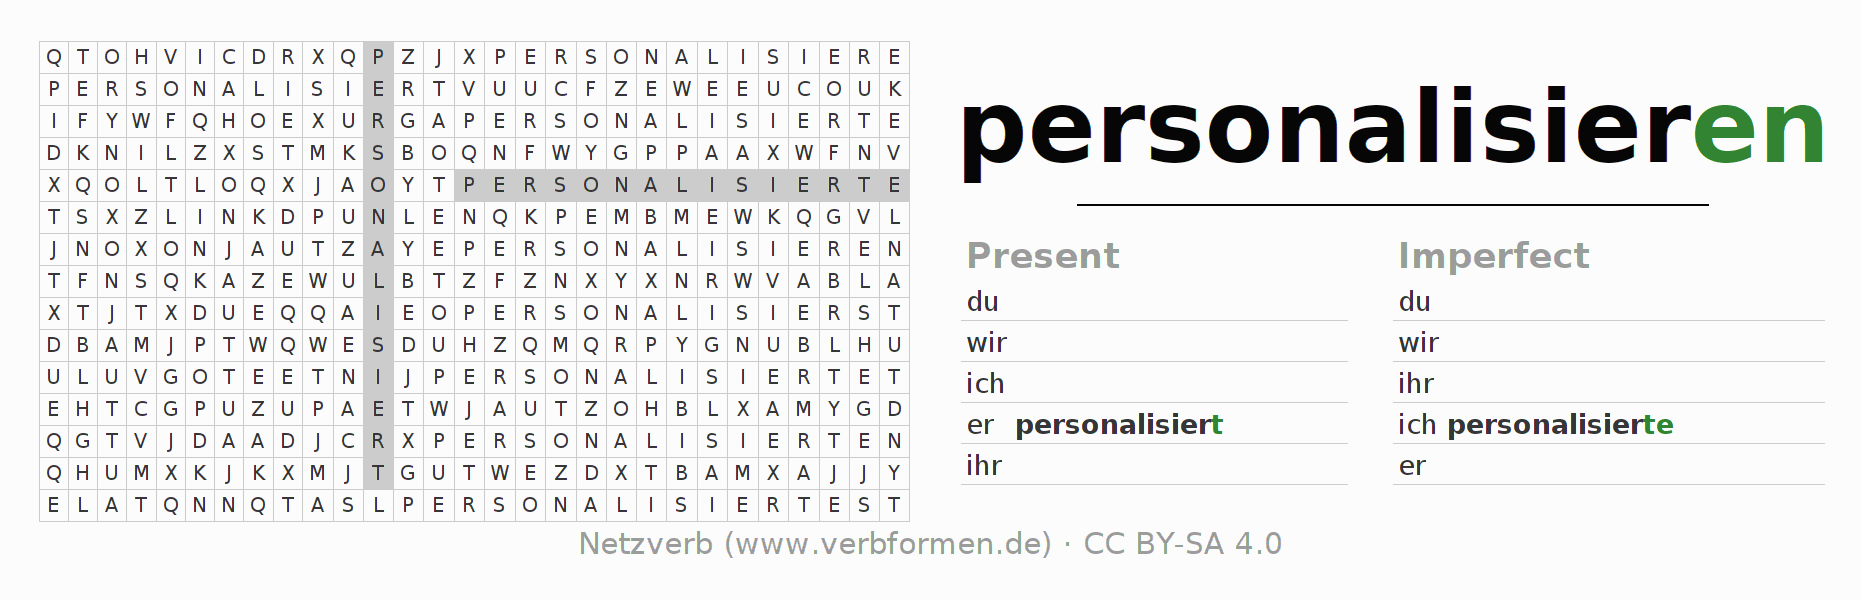 Word search puzzle for the conjugation of the verb personalisieren